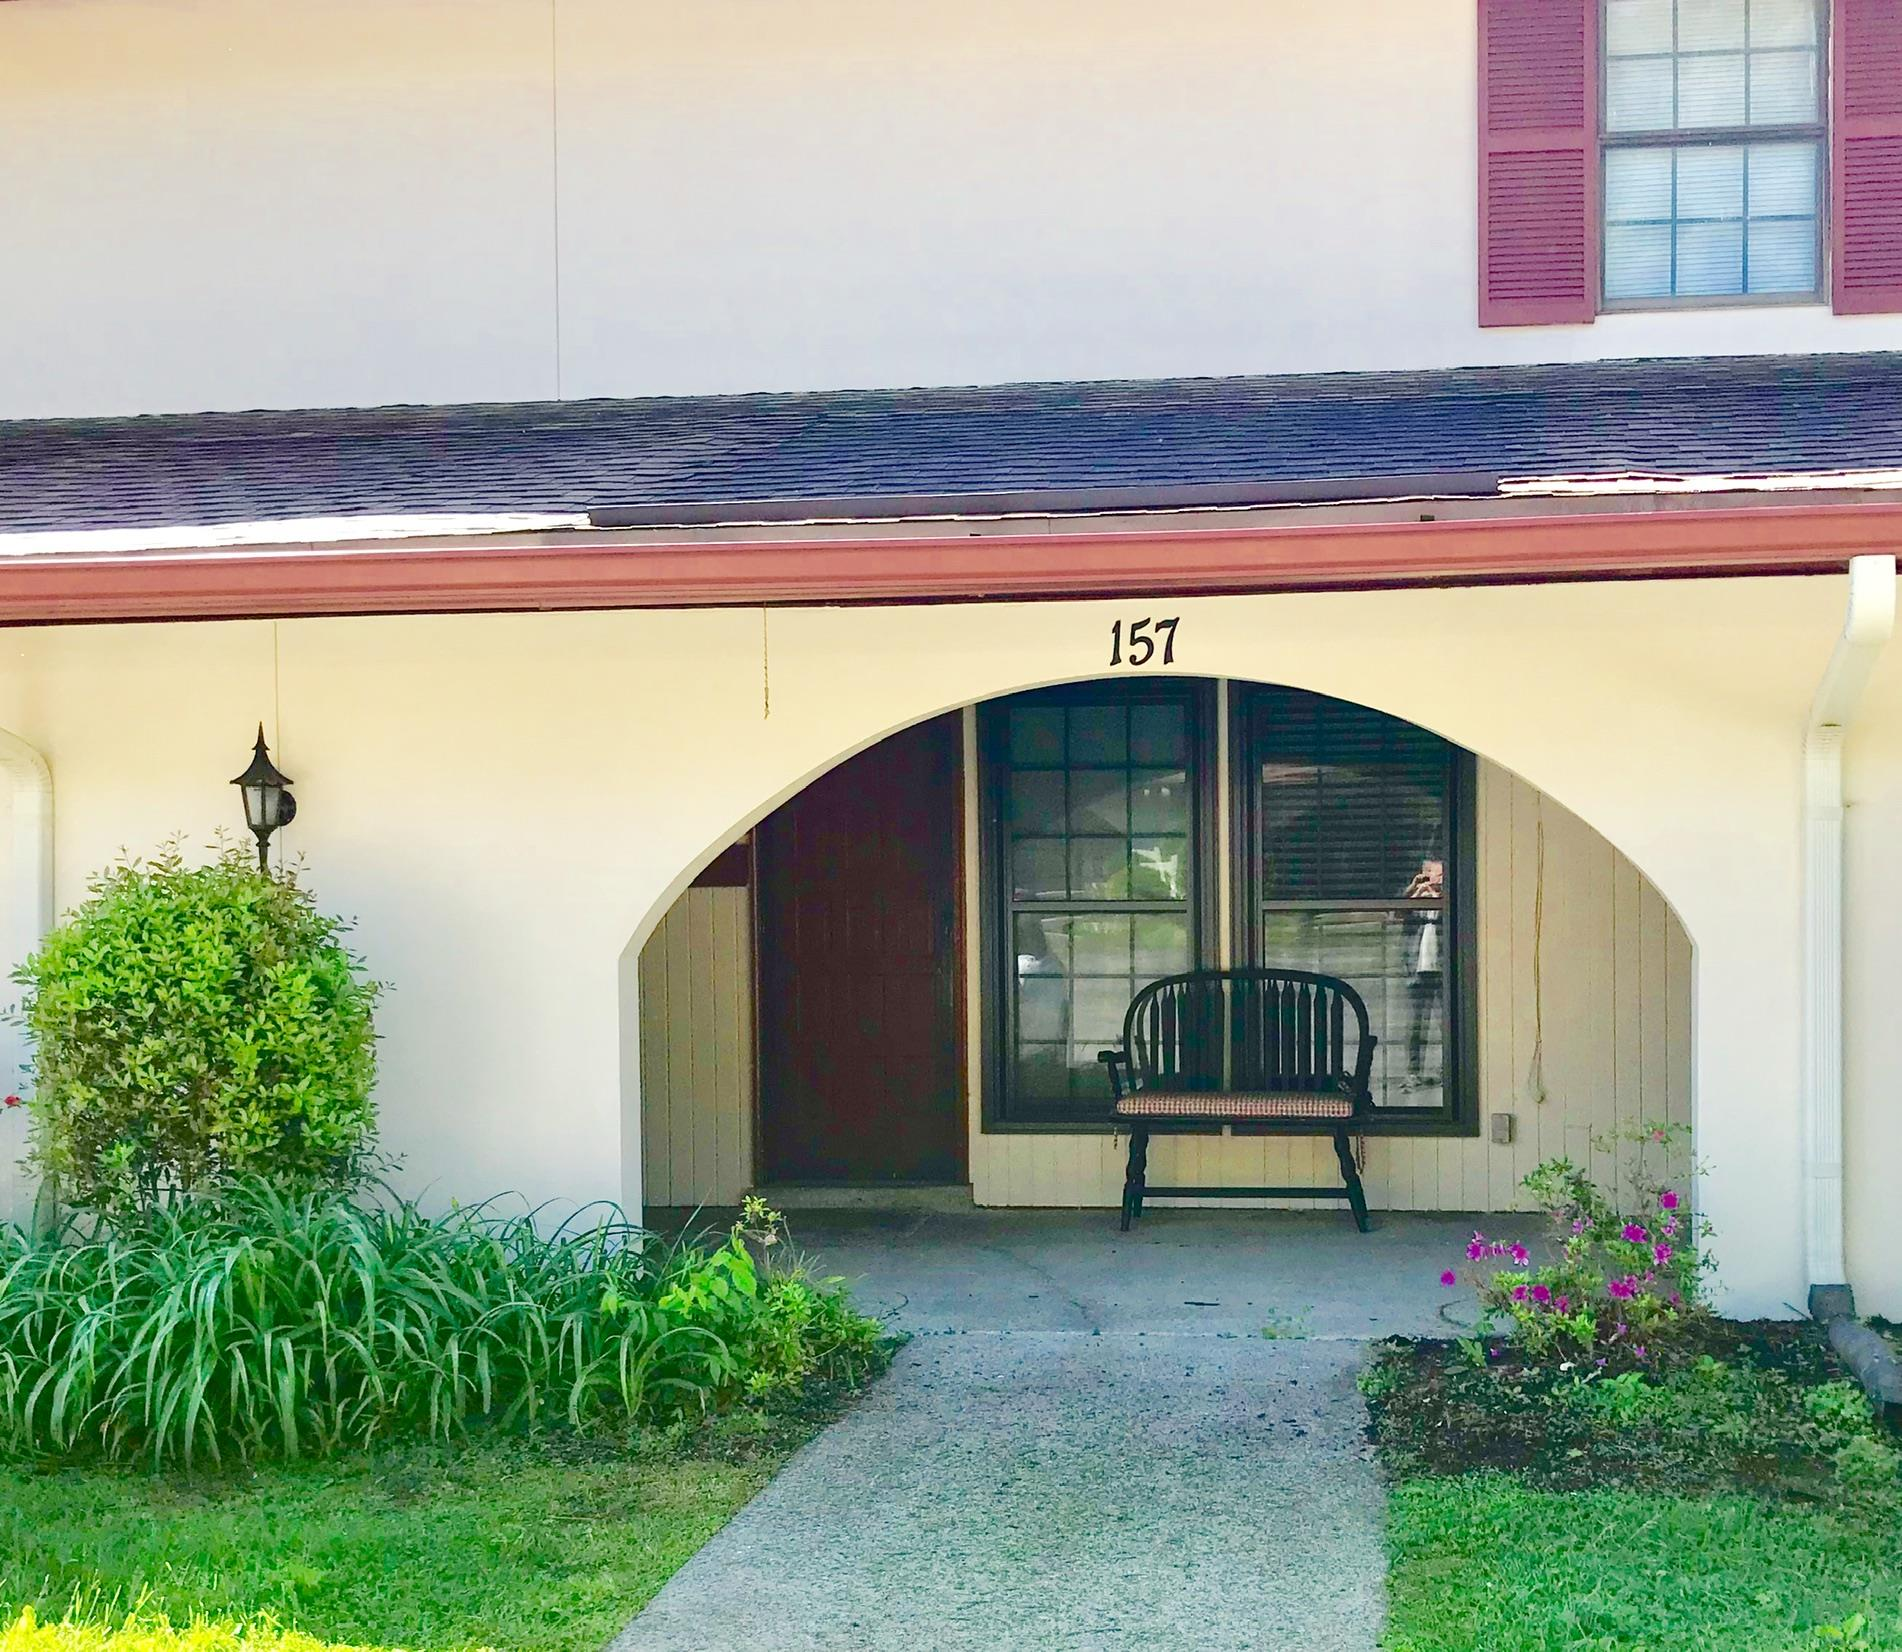 214 Old Hickory Blvd Apt 157, one of homes for sale in Bellevue